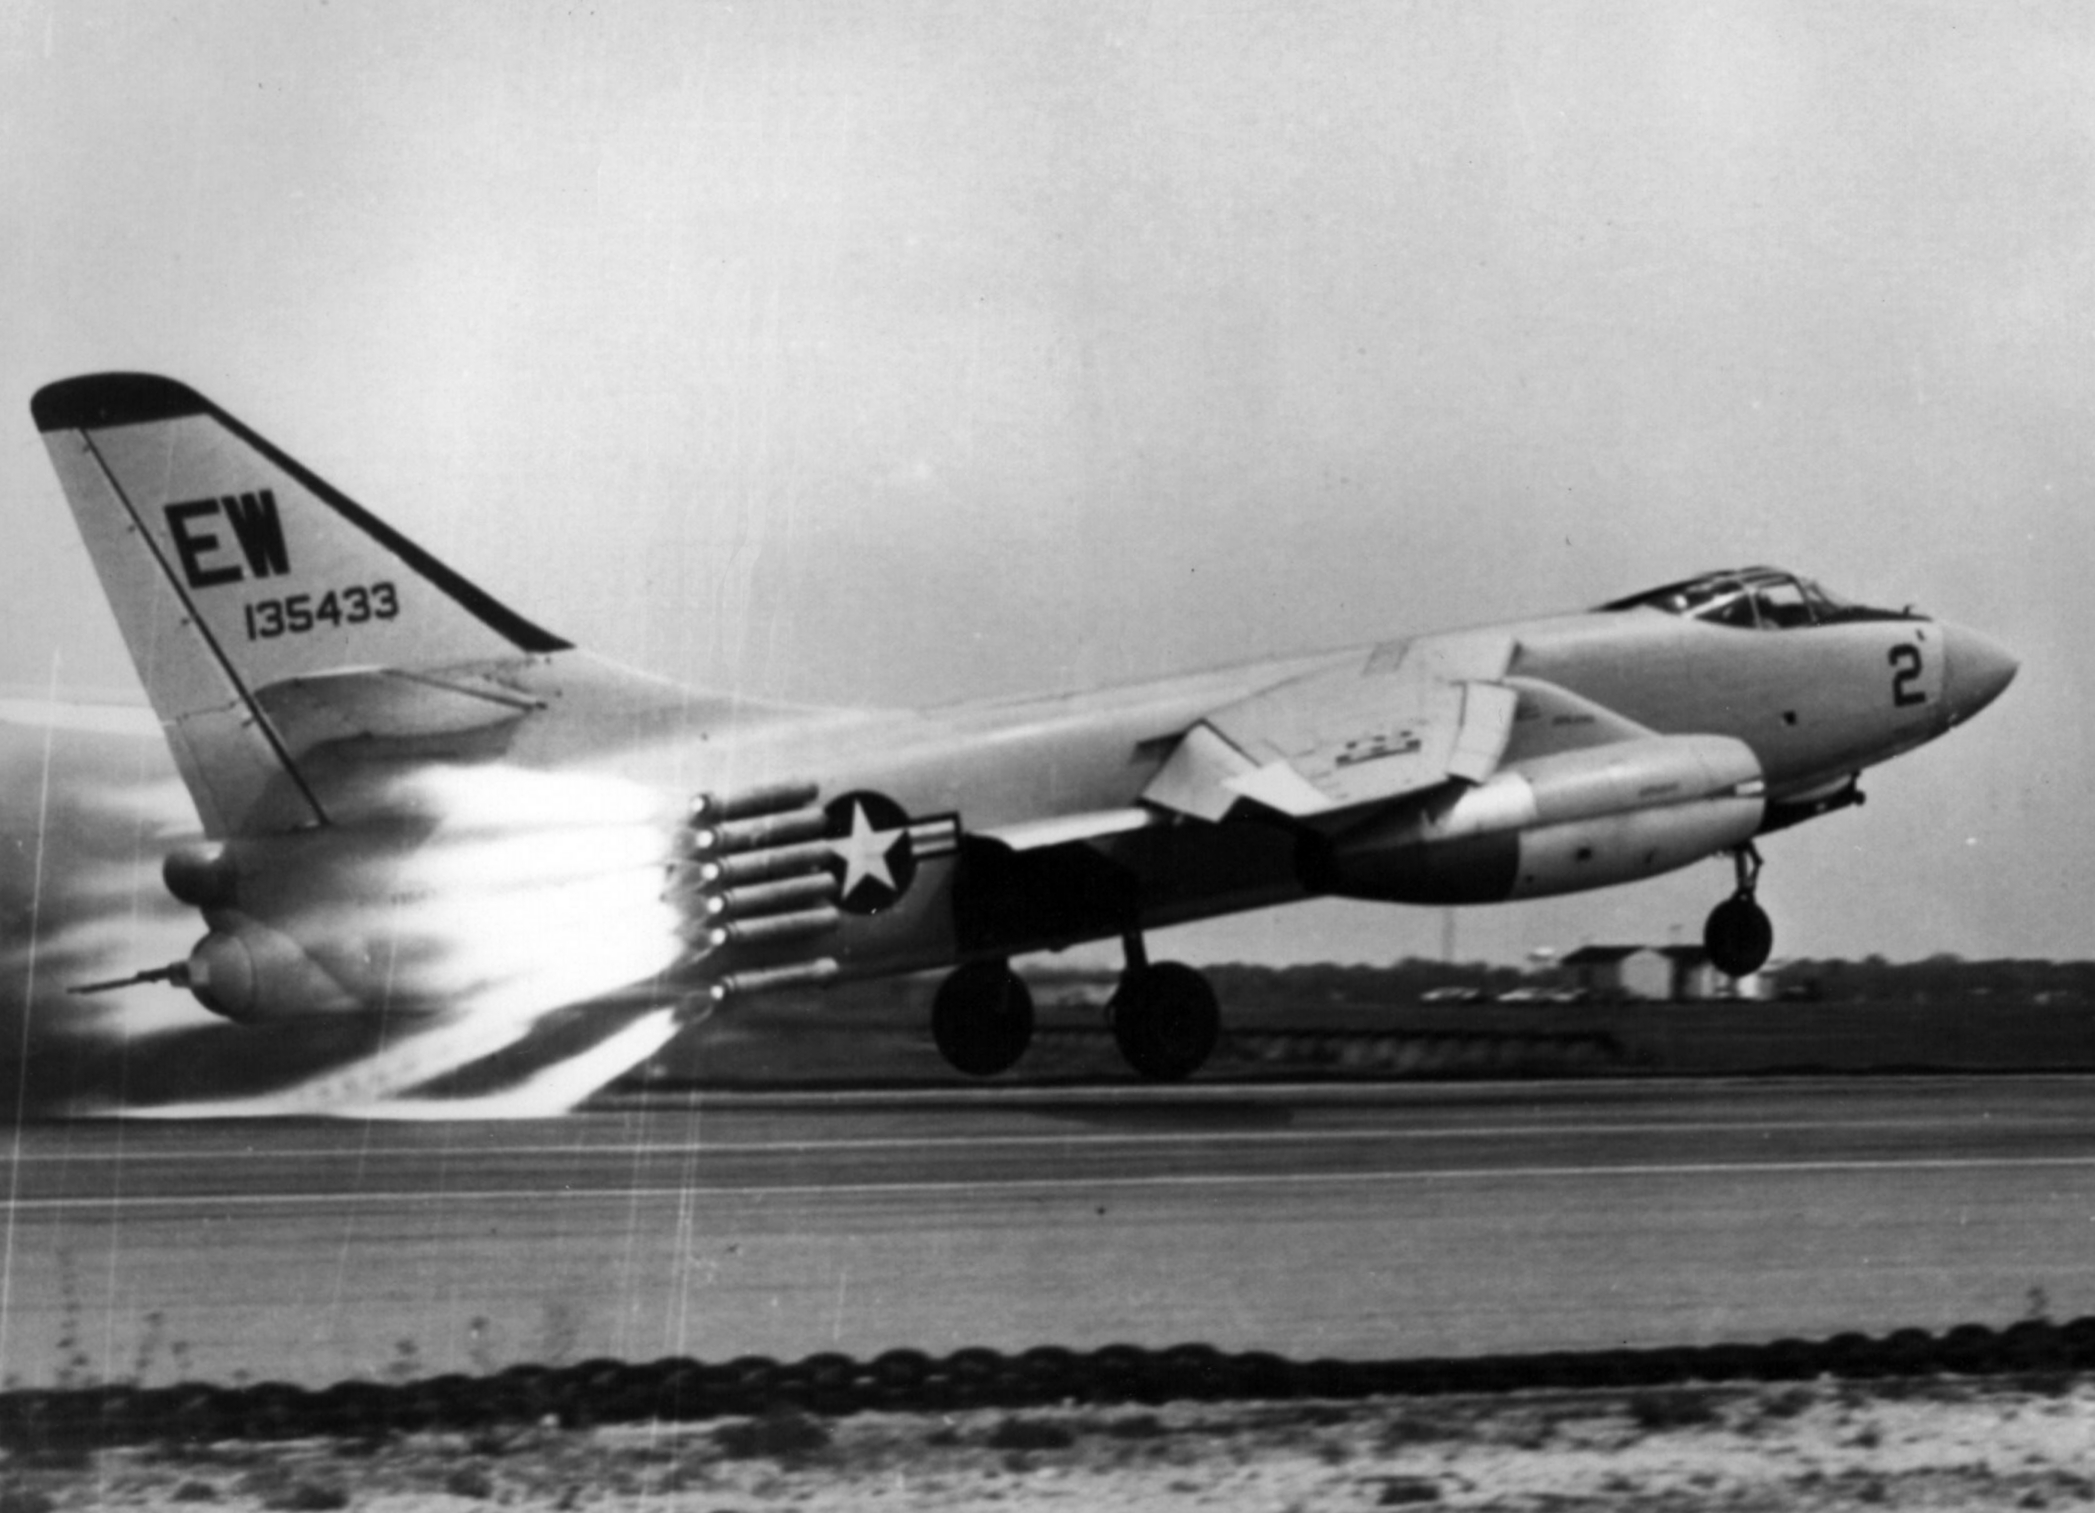 Rocket assisted takeoff photo